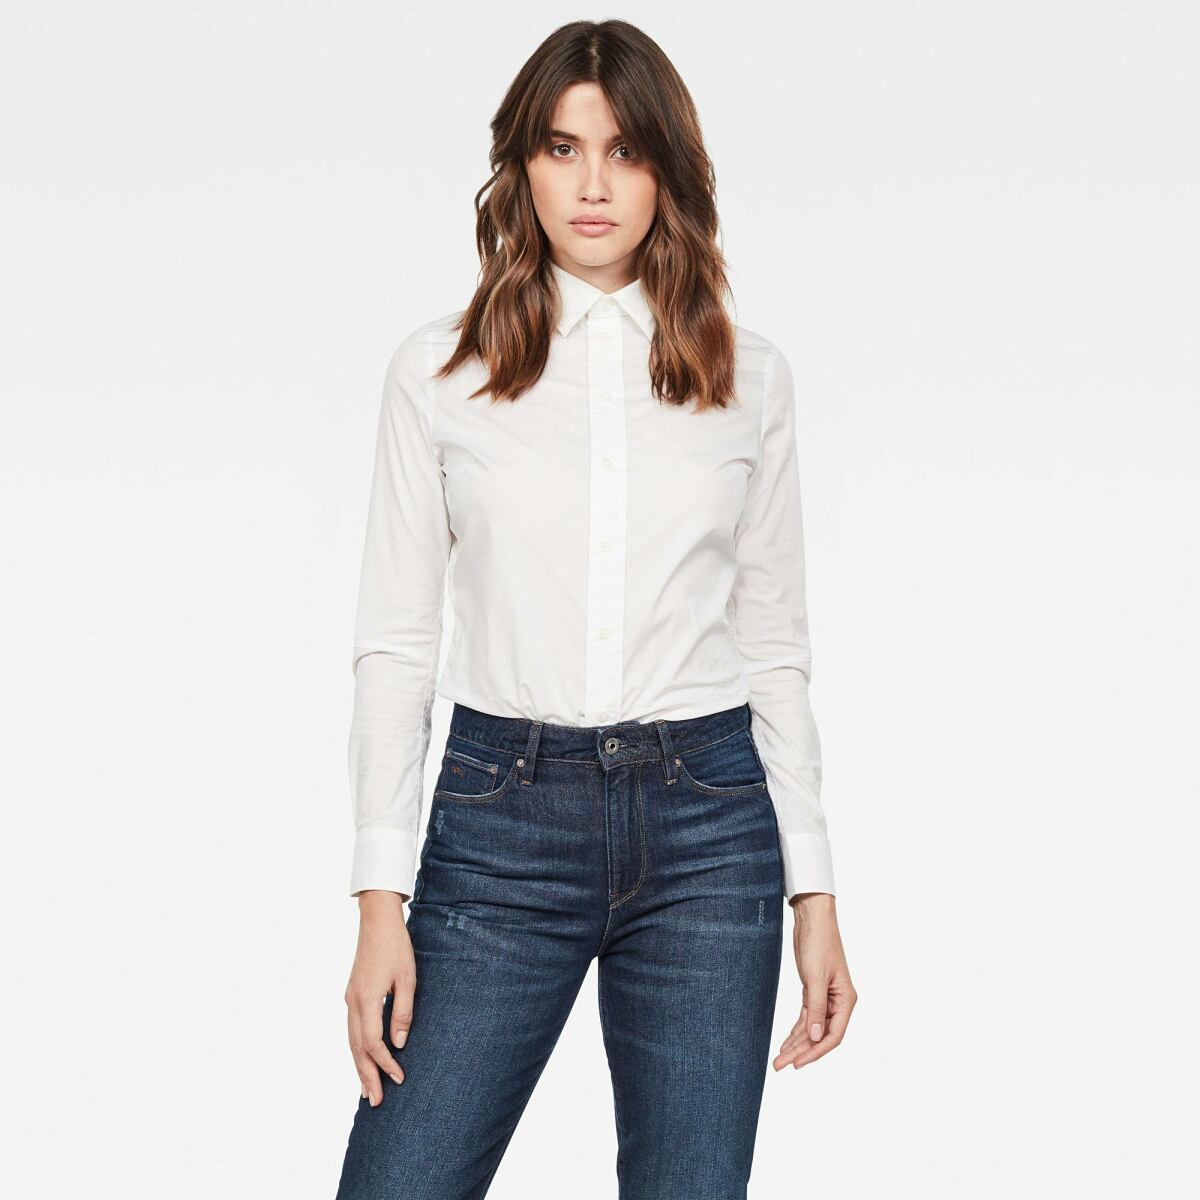 White Woman Holiday WoCore 3D Slim Blouse G-Star WOMEN